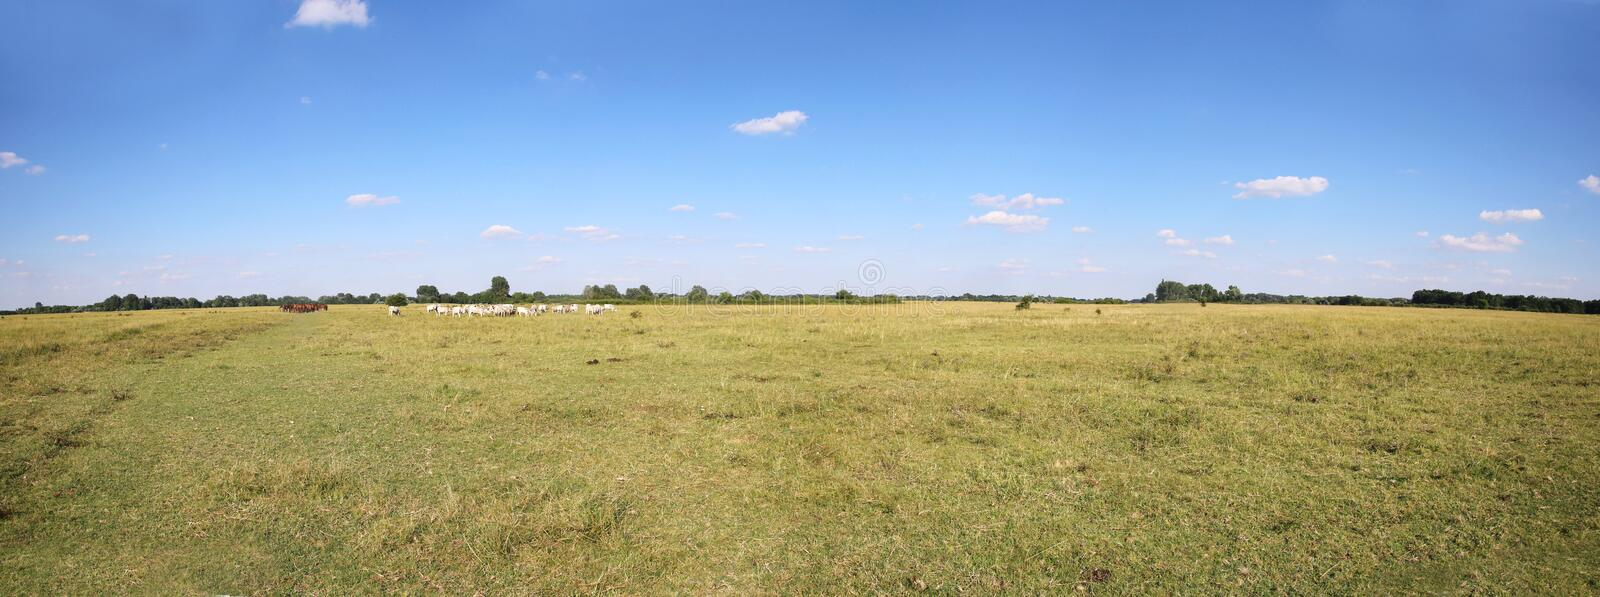 Grey cattle cows herd grazing at hungarian desert puszta. Vast rural colorful panoramic landscape with herd of hungarian grey cattle cows on meadow against blue royalty free stock photos